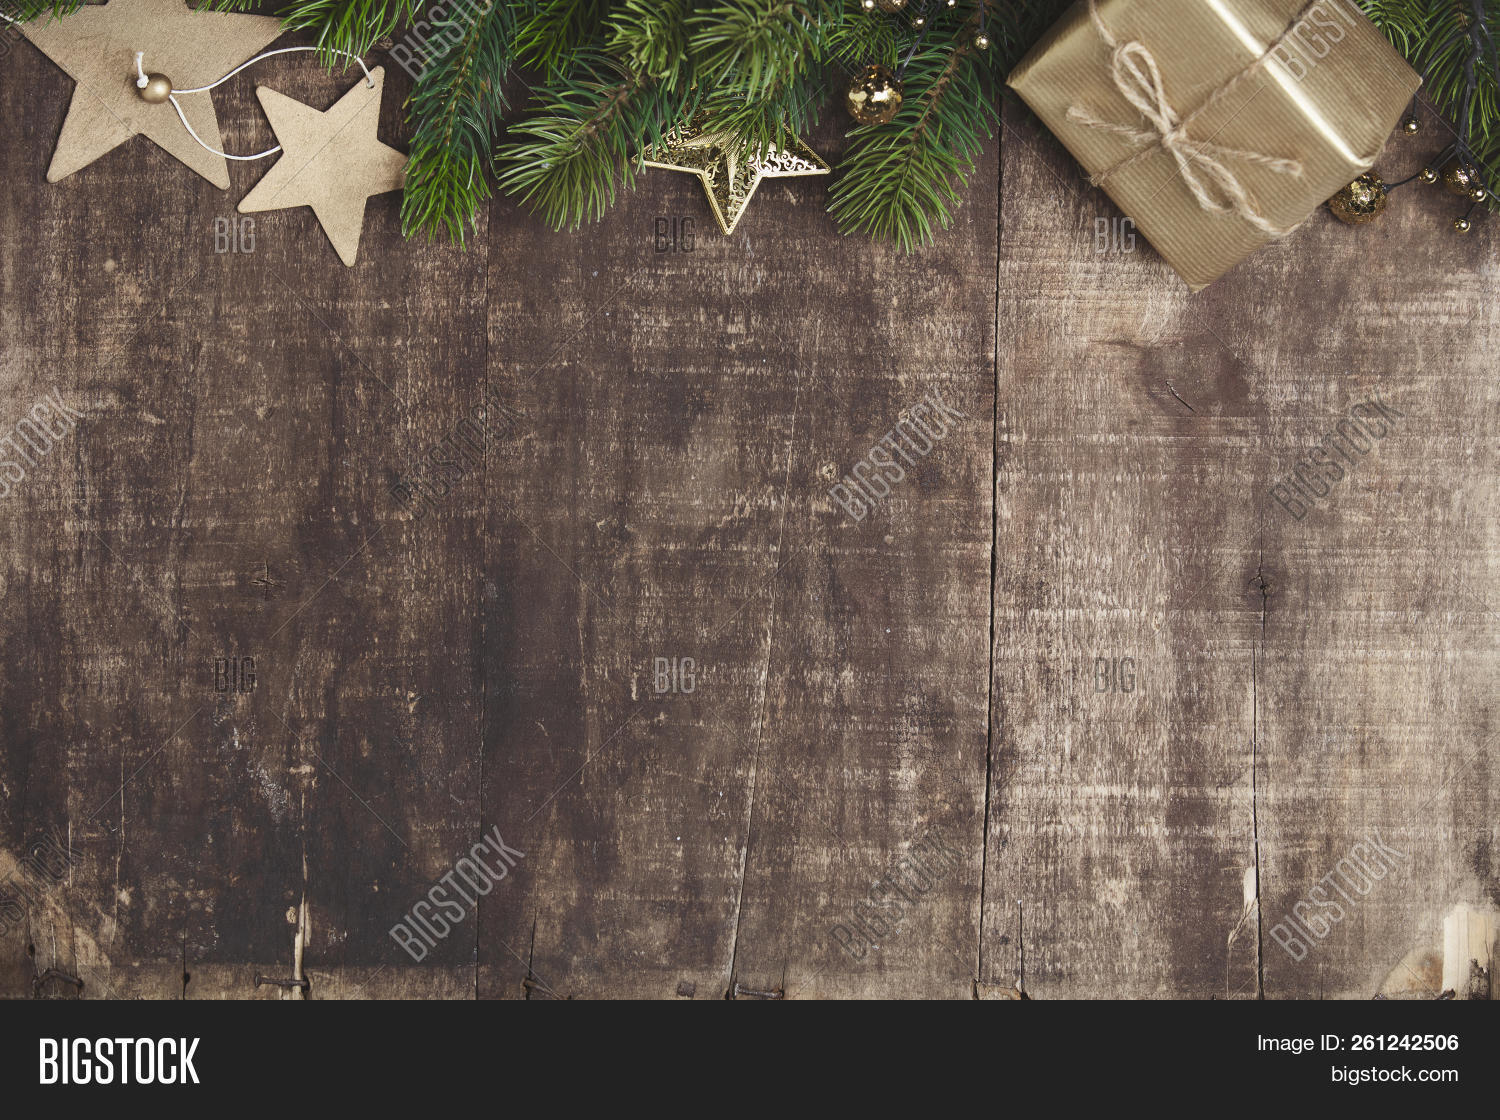 Christmas,background,balls,beautiful,blank,brown,card,celebration,concept,cones,copy,decorated,design,display,enjoy,family,festival,frame,gift,gold,green,greeting,happy,holiday,light,lovely,natural,pine,plank,red,relax,rustic,season,show,snow,space,star,style,sweet,texture,theme,tree,vintage,wallpaper,warm,winter,wood